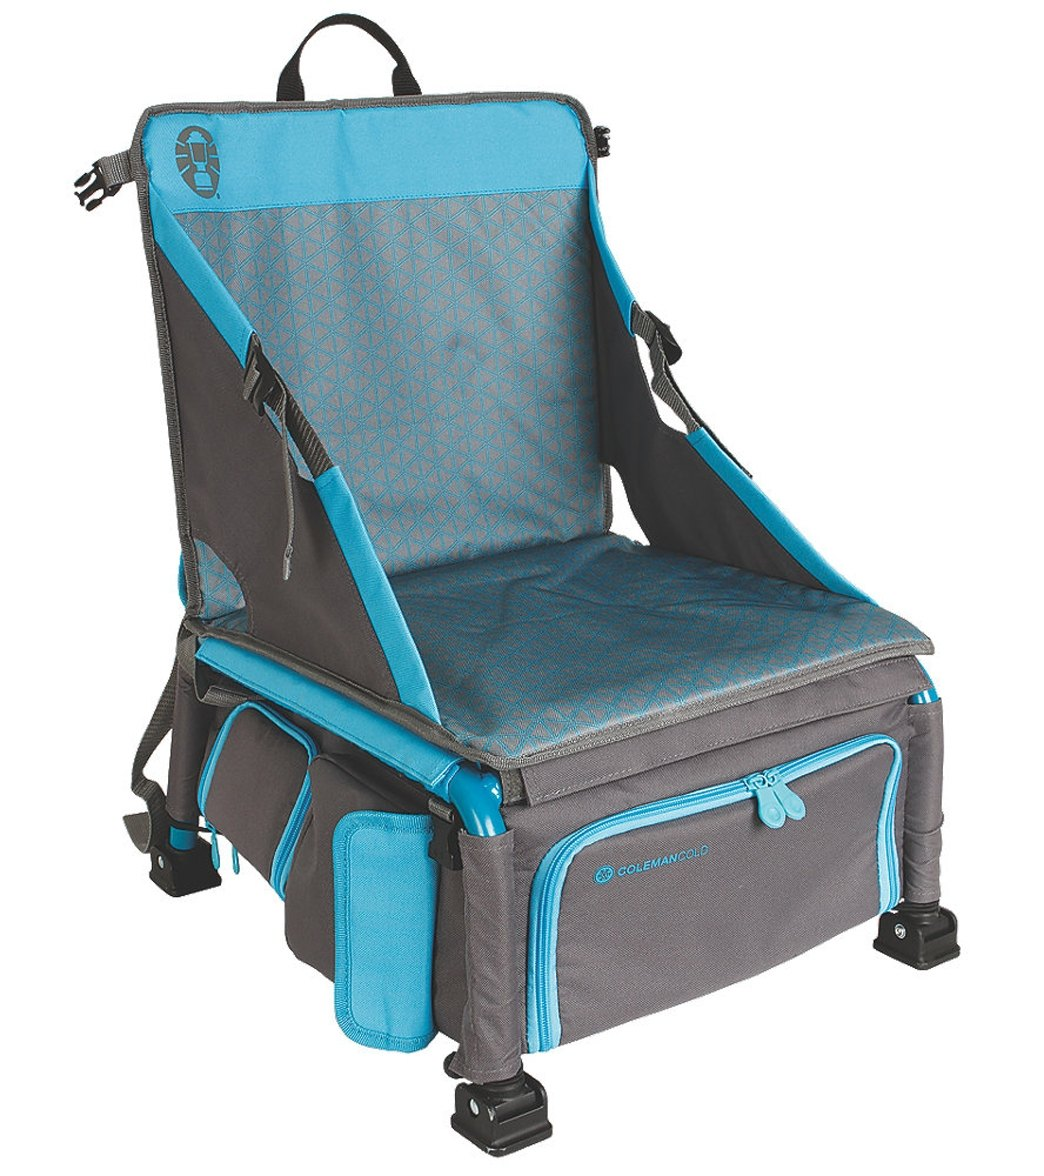 Beach Chairs On Sale Coleman Treklite Coolerpack Beach Chair